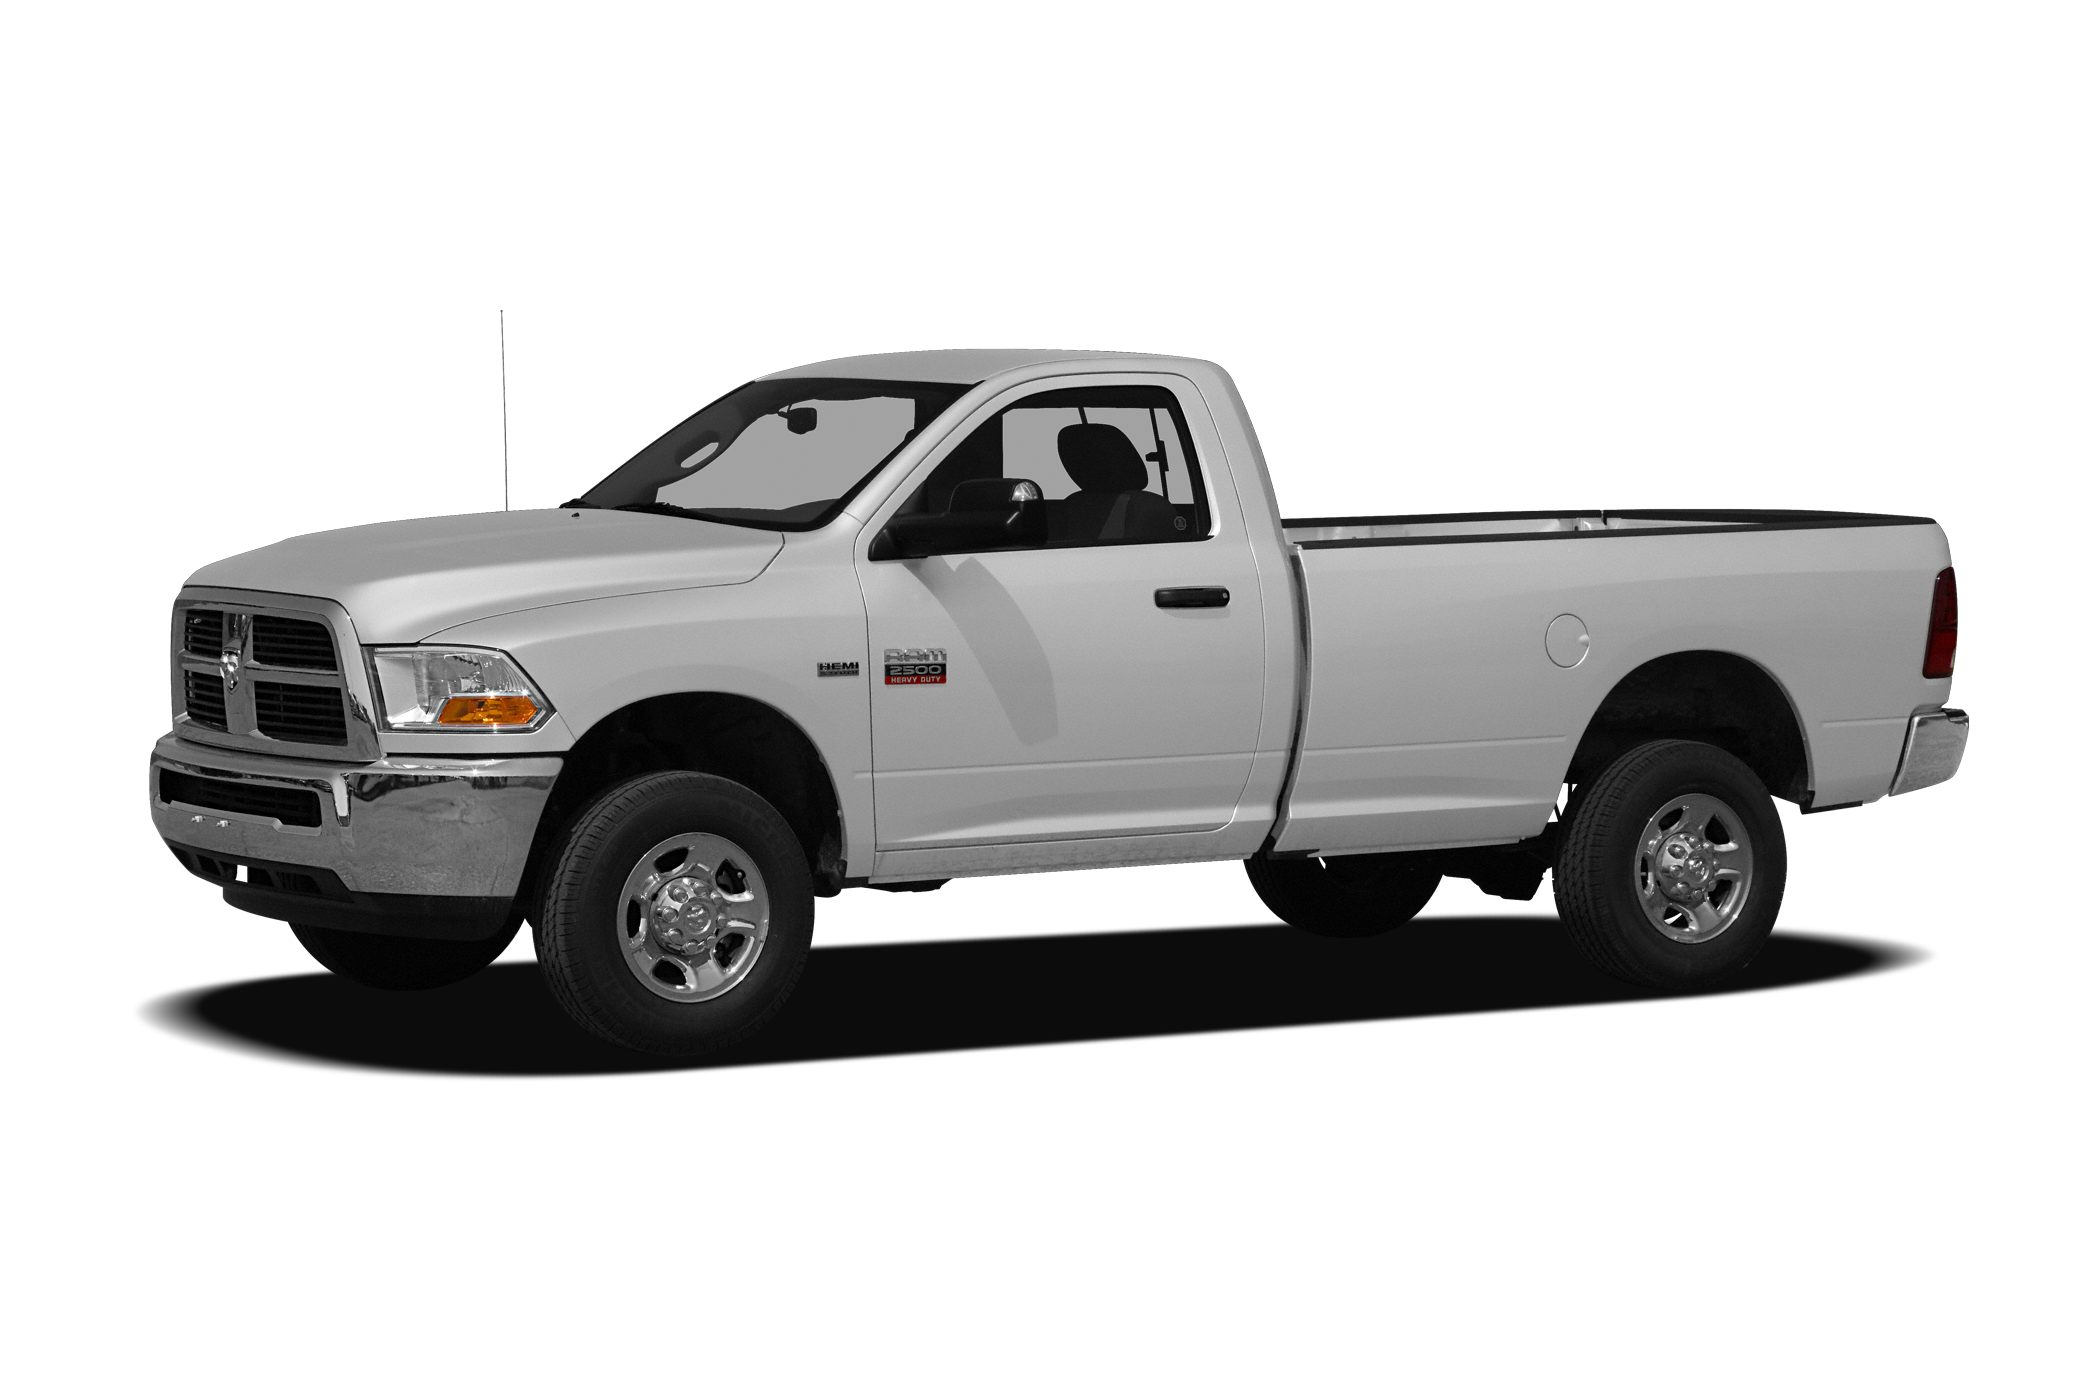 2011 Dodge Ram 2500 Specs And Prices